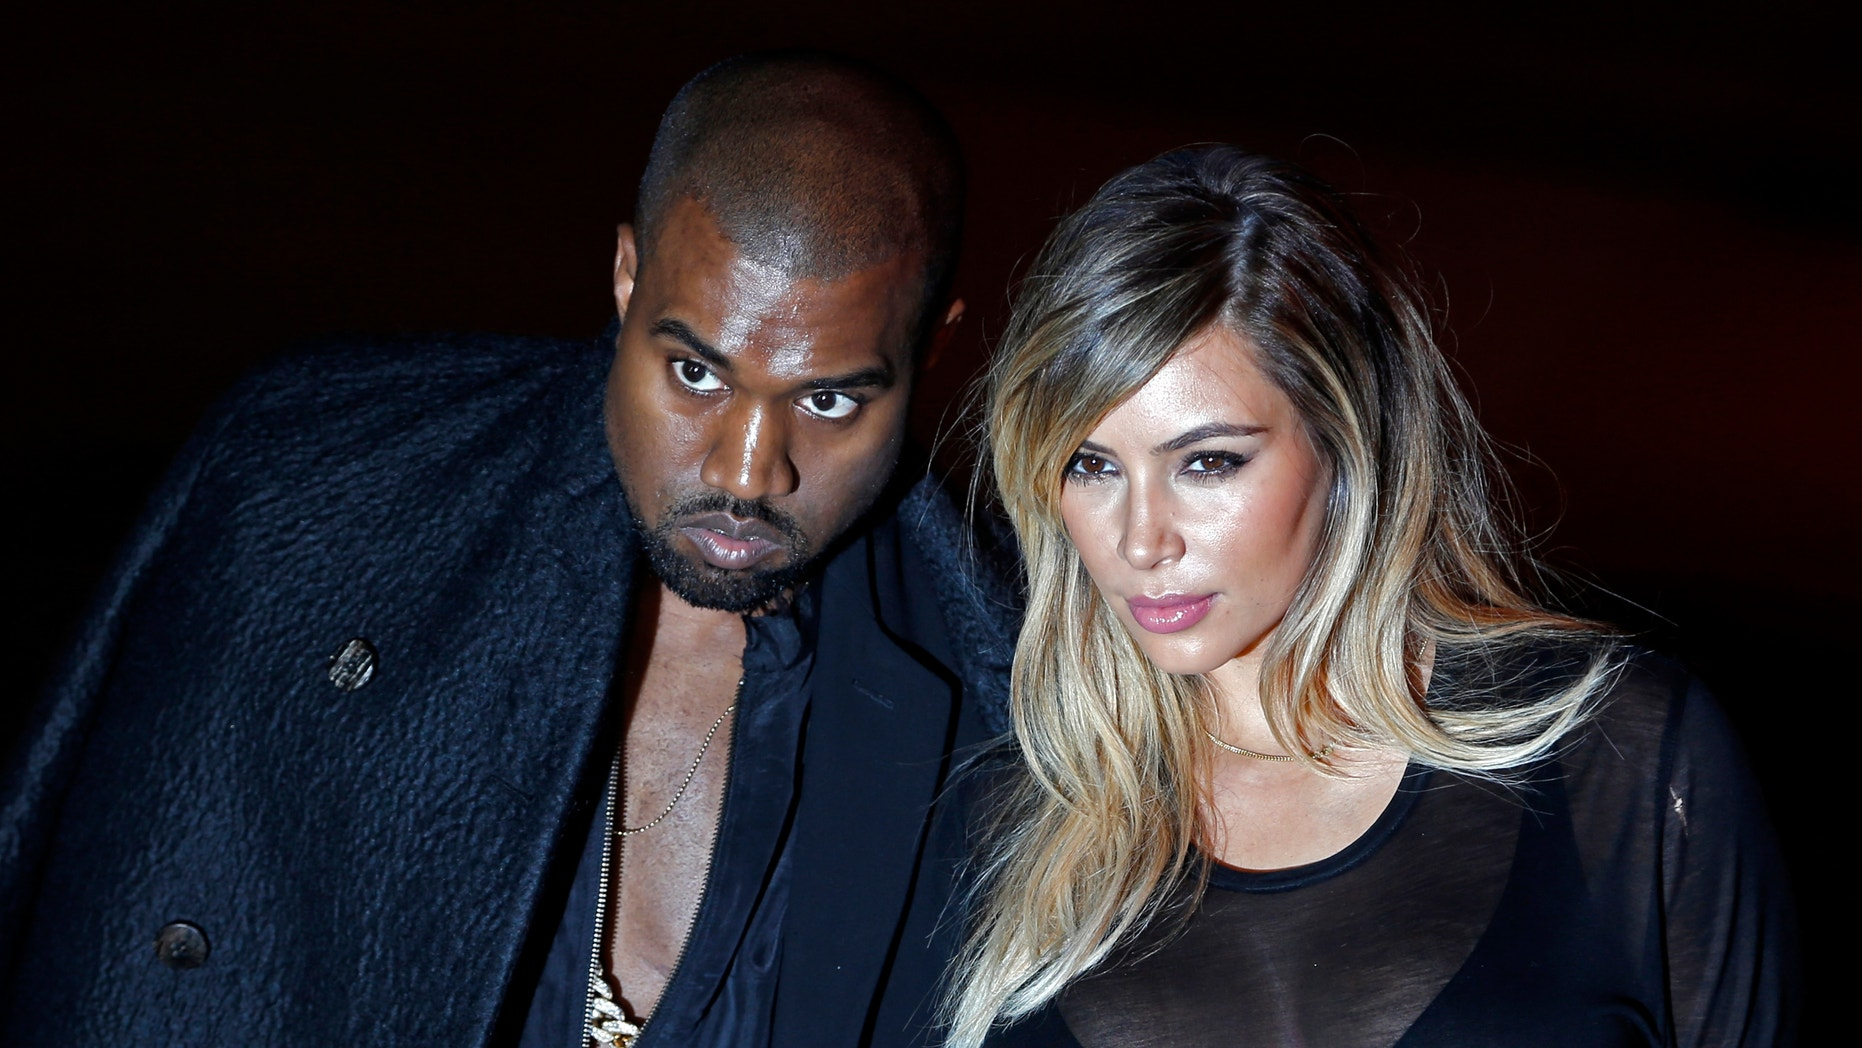 U.S. musician Kanye West and companion Kim Kardashian arrive at the Givenchy Spring/Summer 2014 women's ready-to-wear fashion show during Paris Fashion Week September 29, 2013